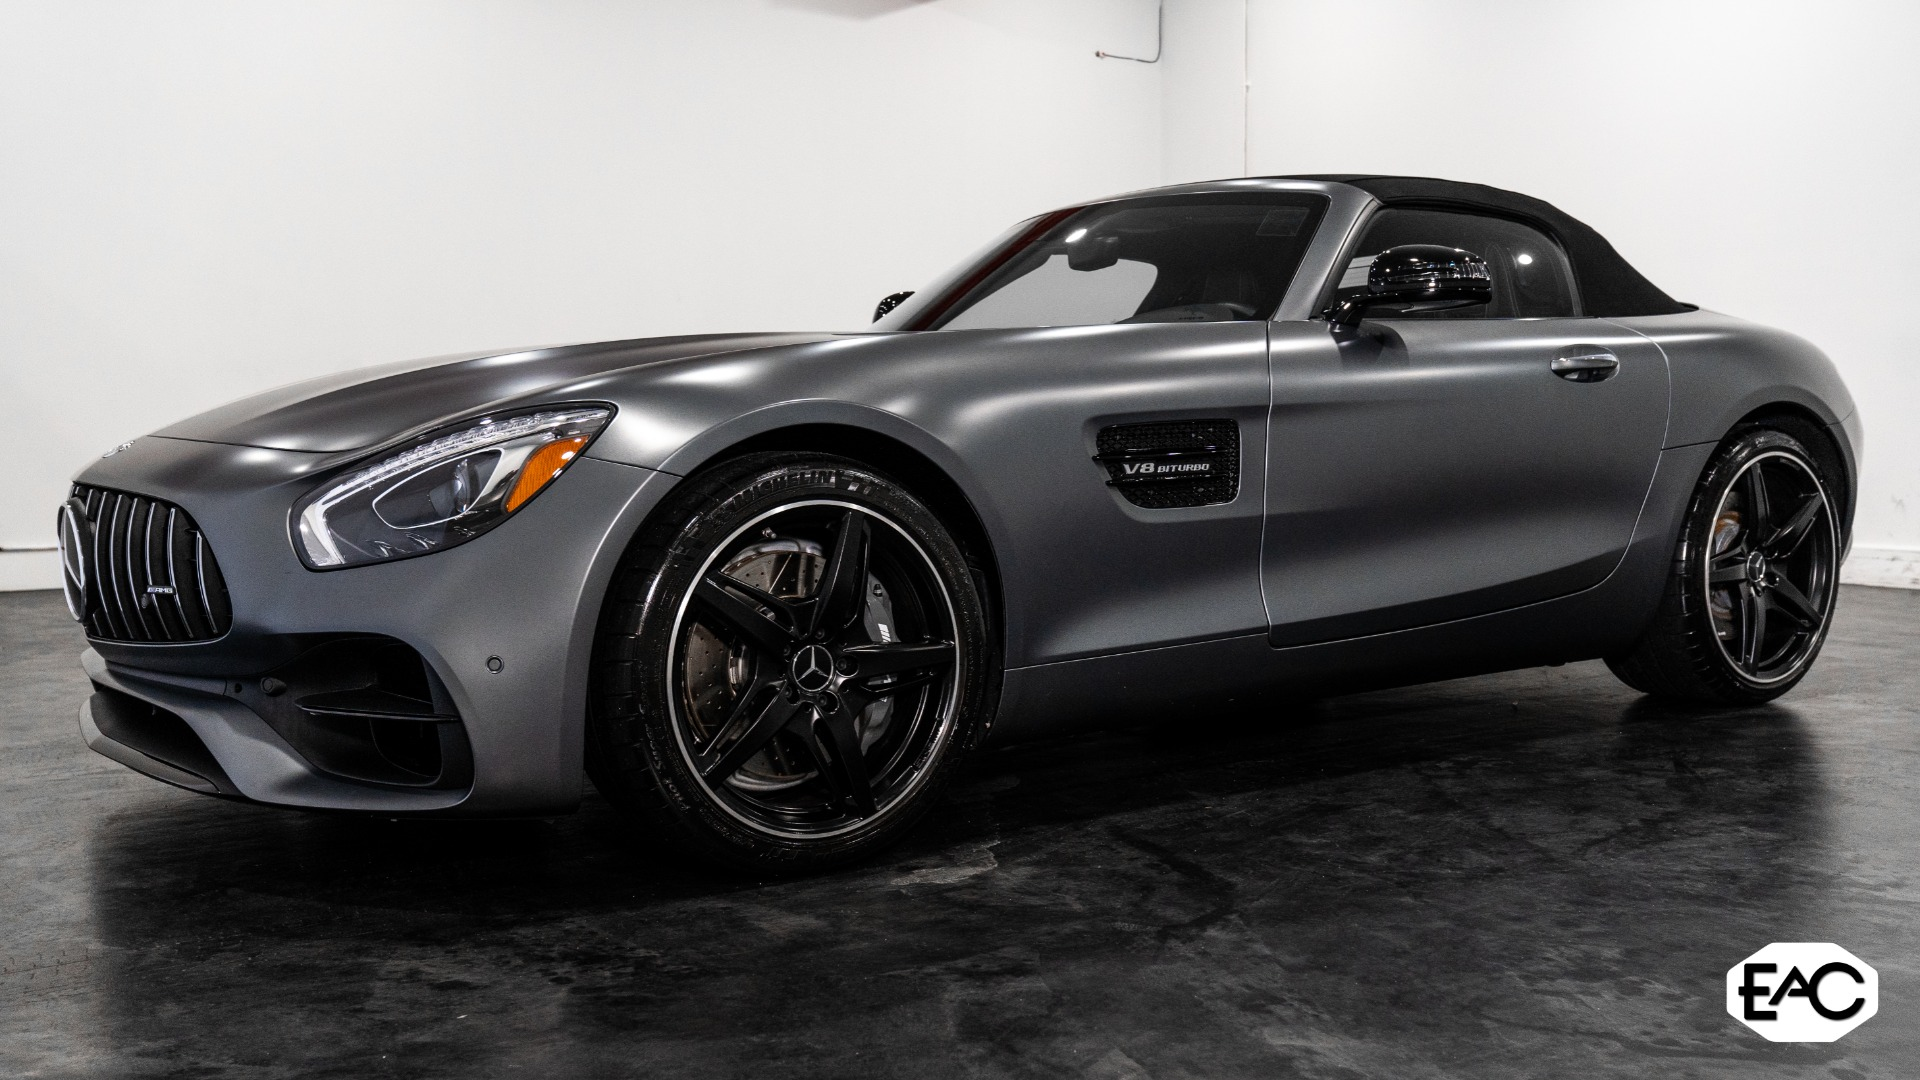 Used 2018 Mercedes-Benz AMG GT 2dr Roadster for sale Sold at Empire Auto Collection in Warren MI 48091 1